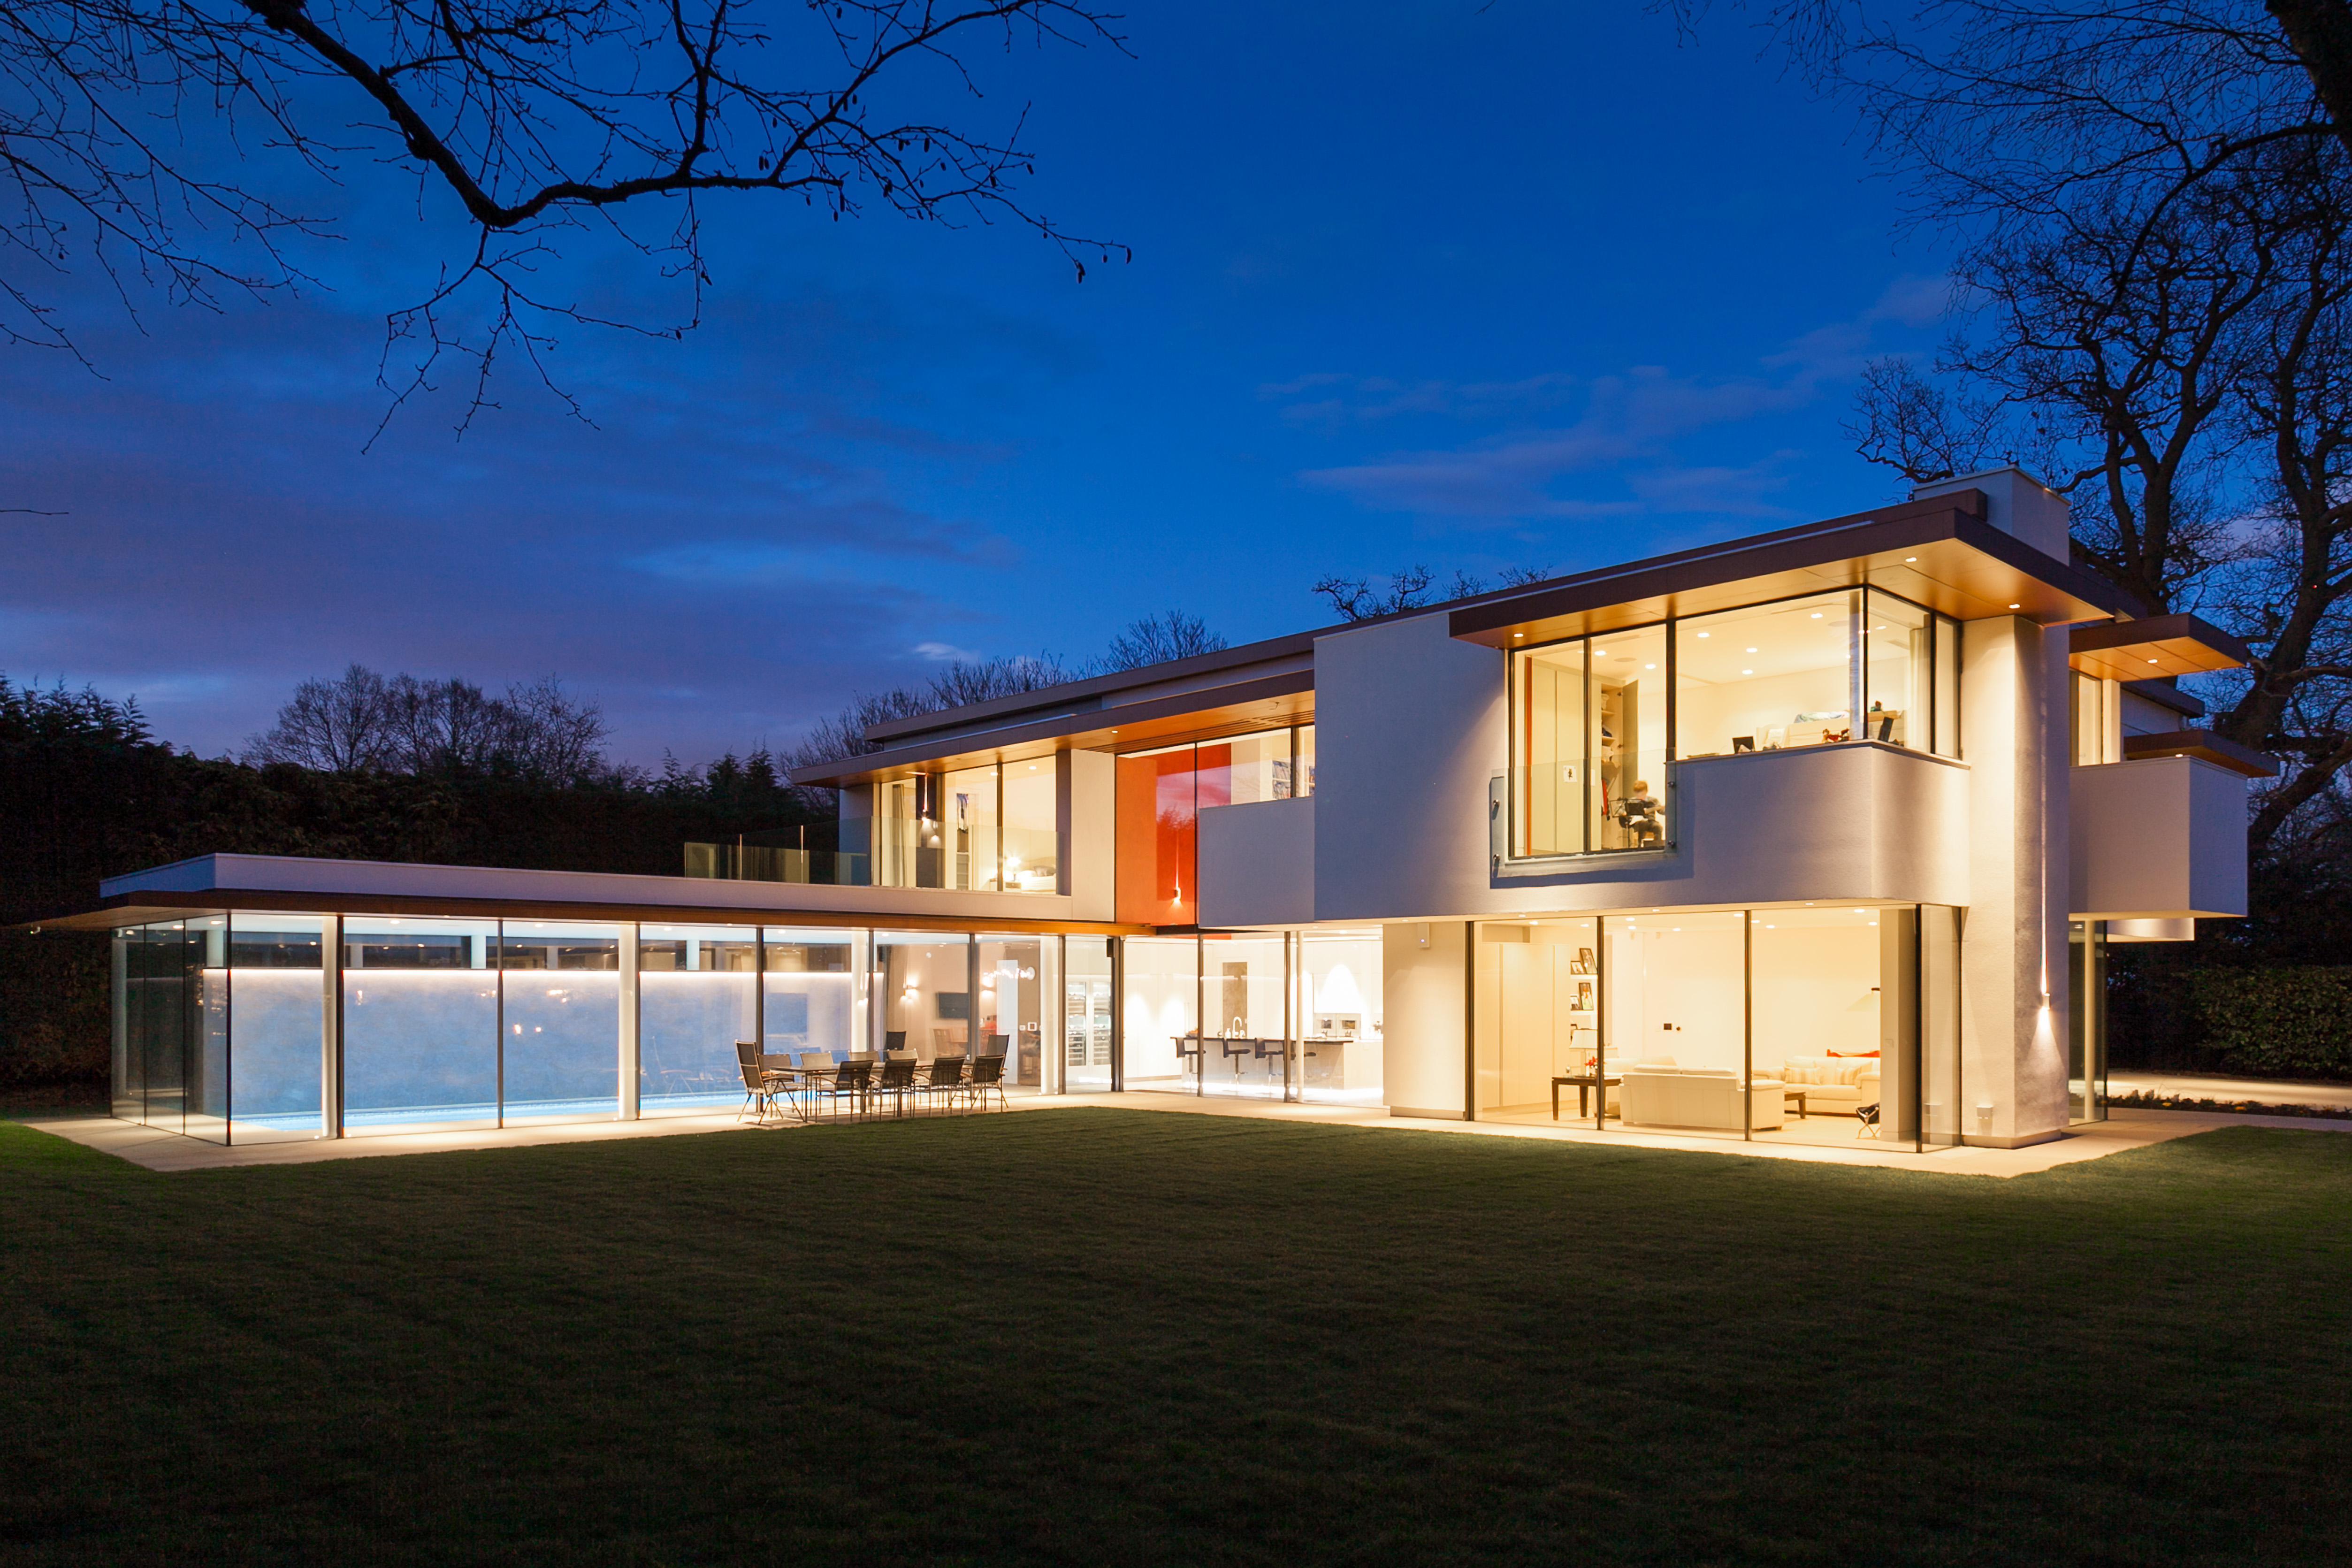 3s Architects and Designers - The White House